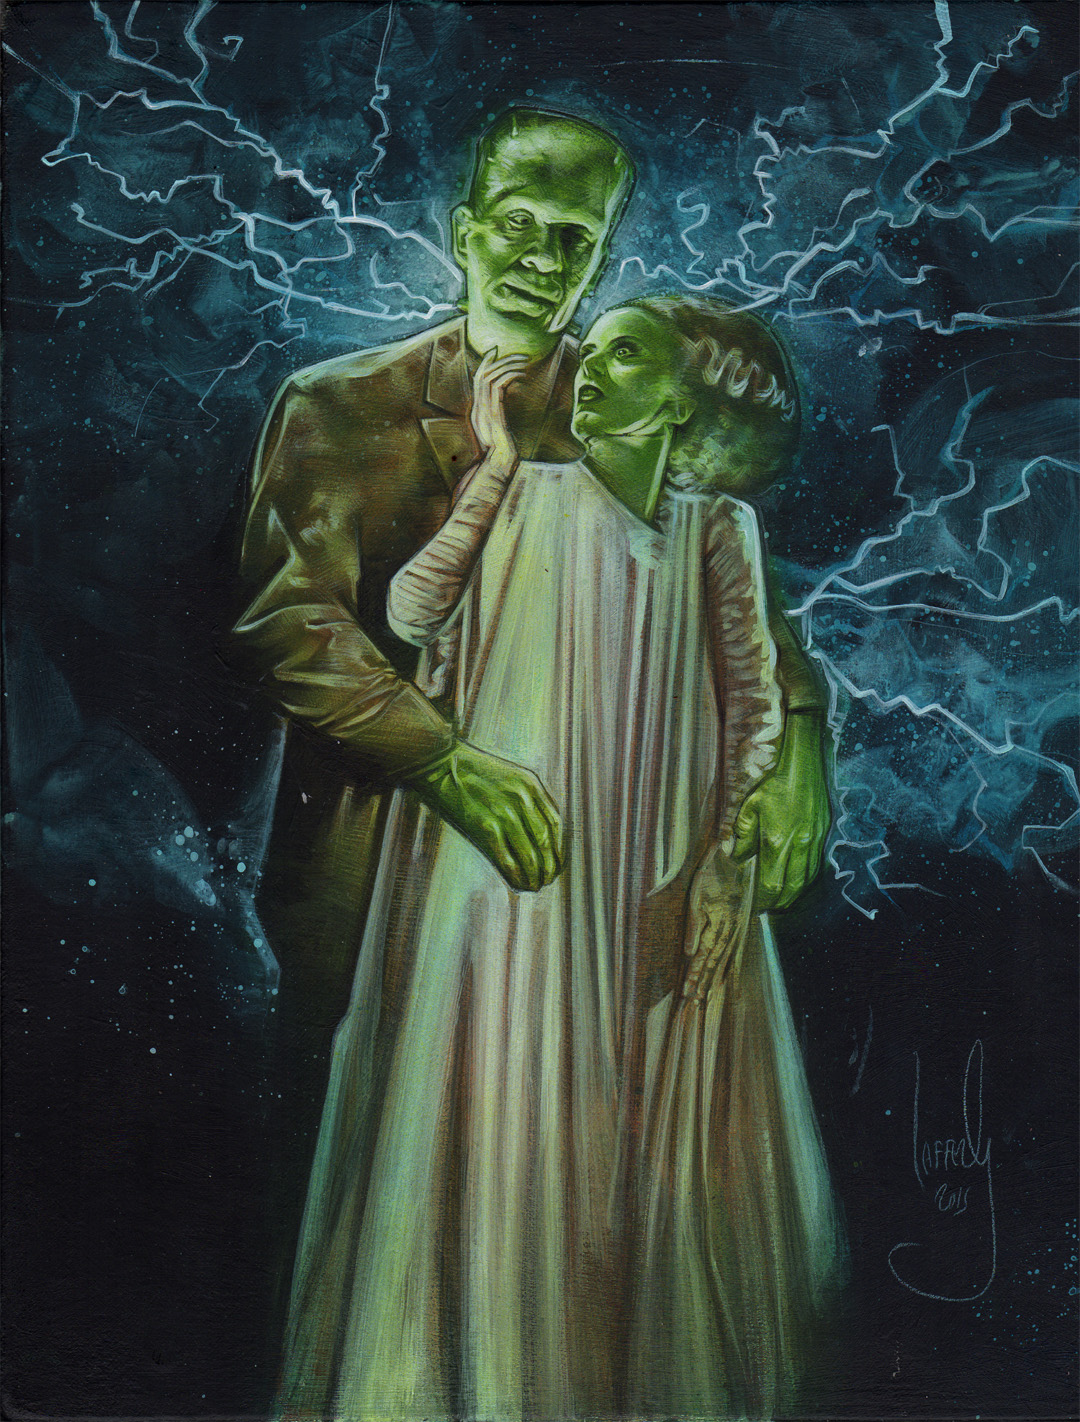 Frankenstein & Bride, Artwork is Copyright © 2015 Jeff Lafferty